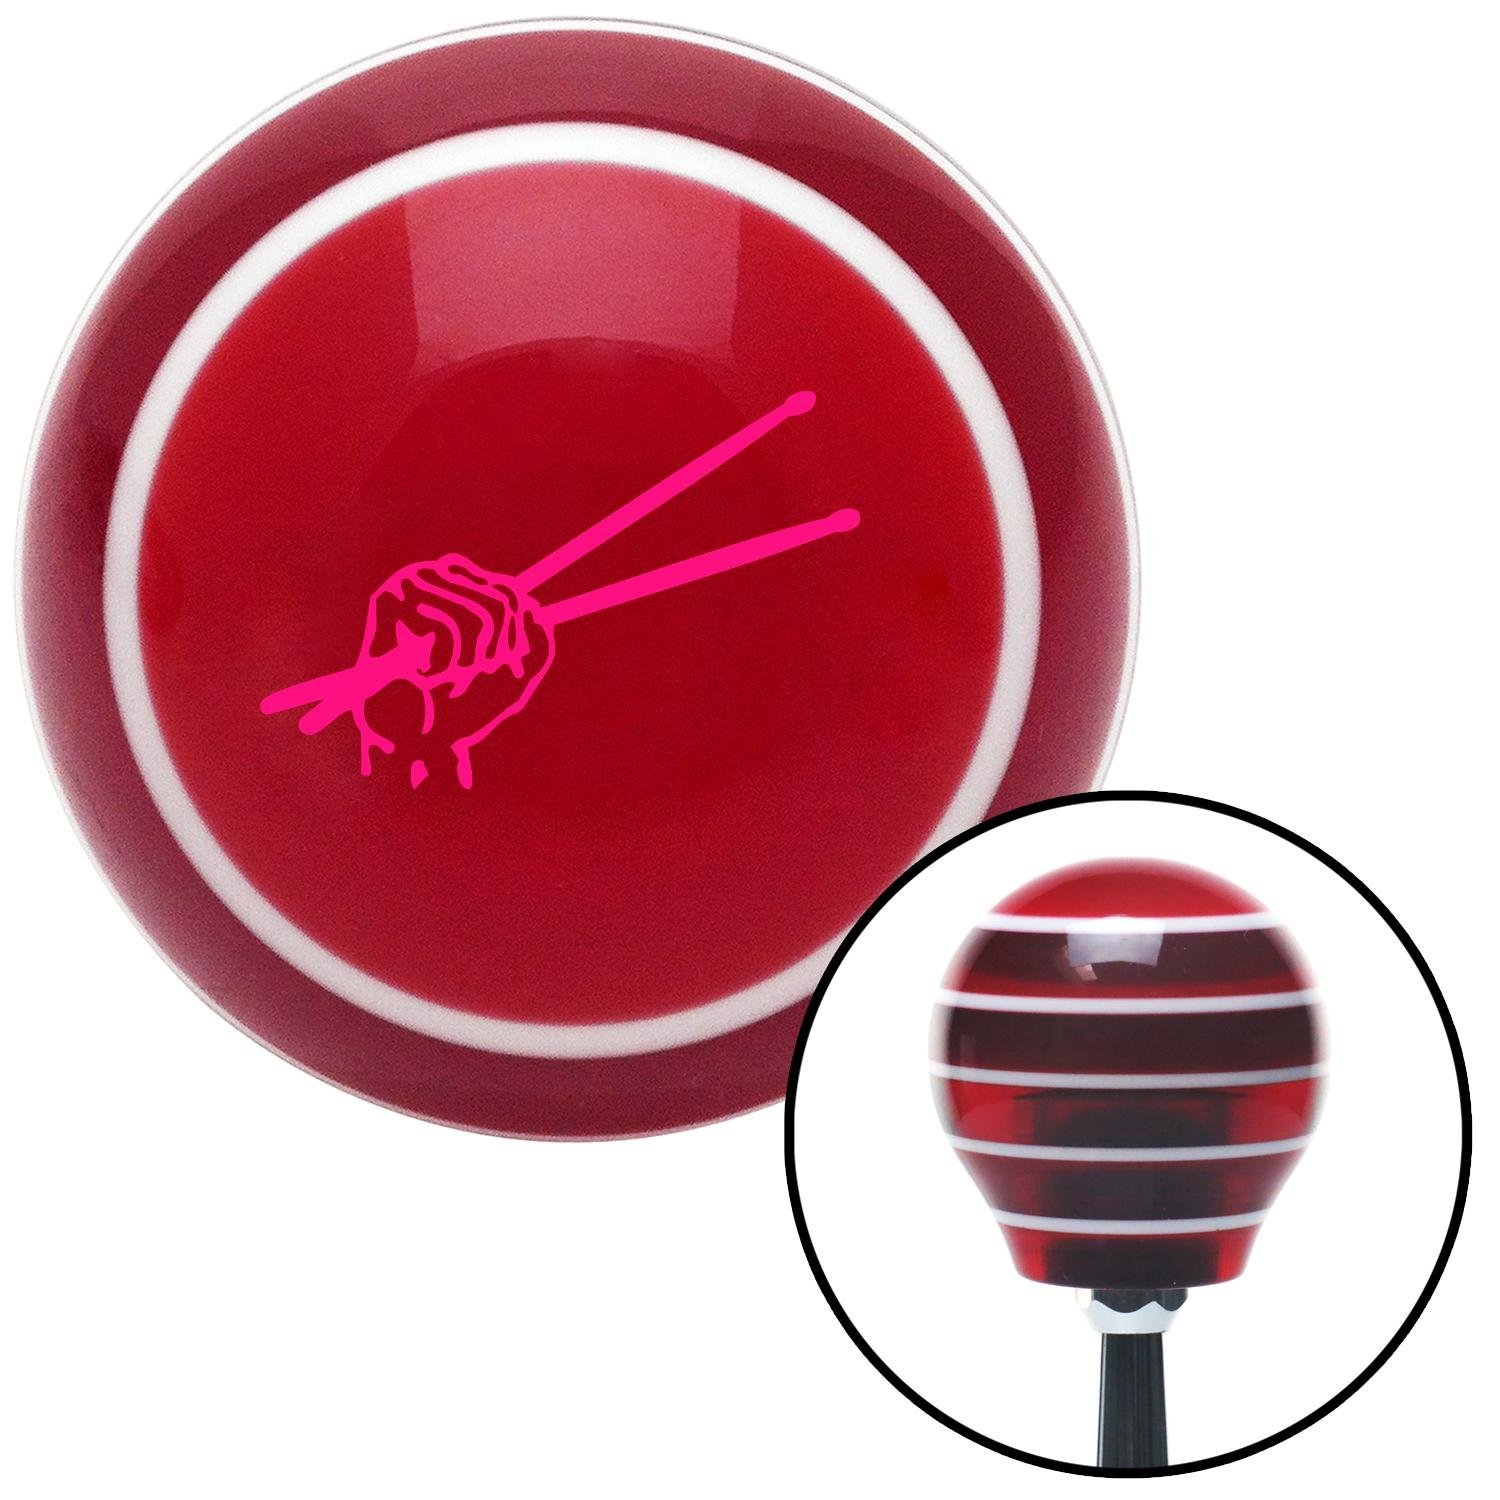 Pink Drumsticks Clenched American Shifter 116139 Red Stripe Shift Knob with M16 x 1.5 Insert